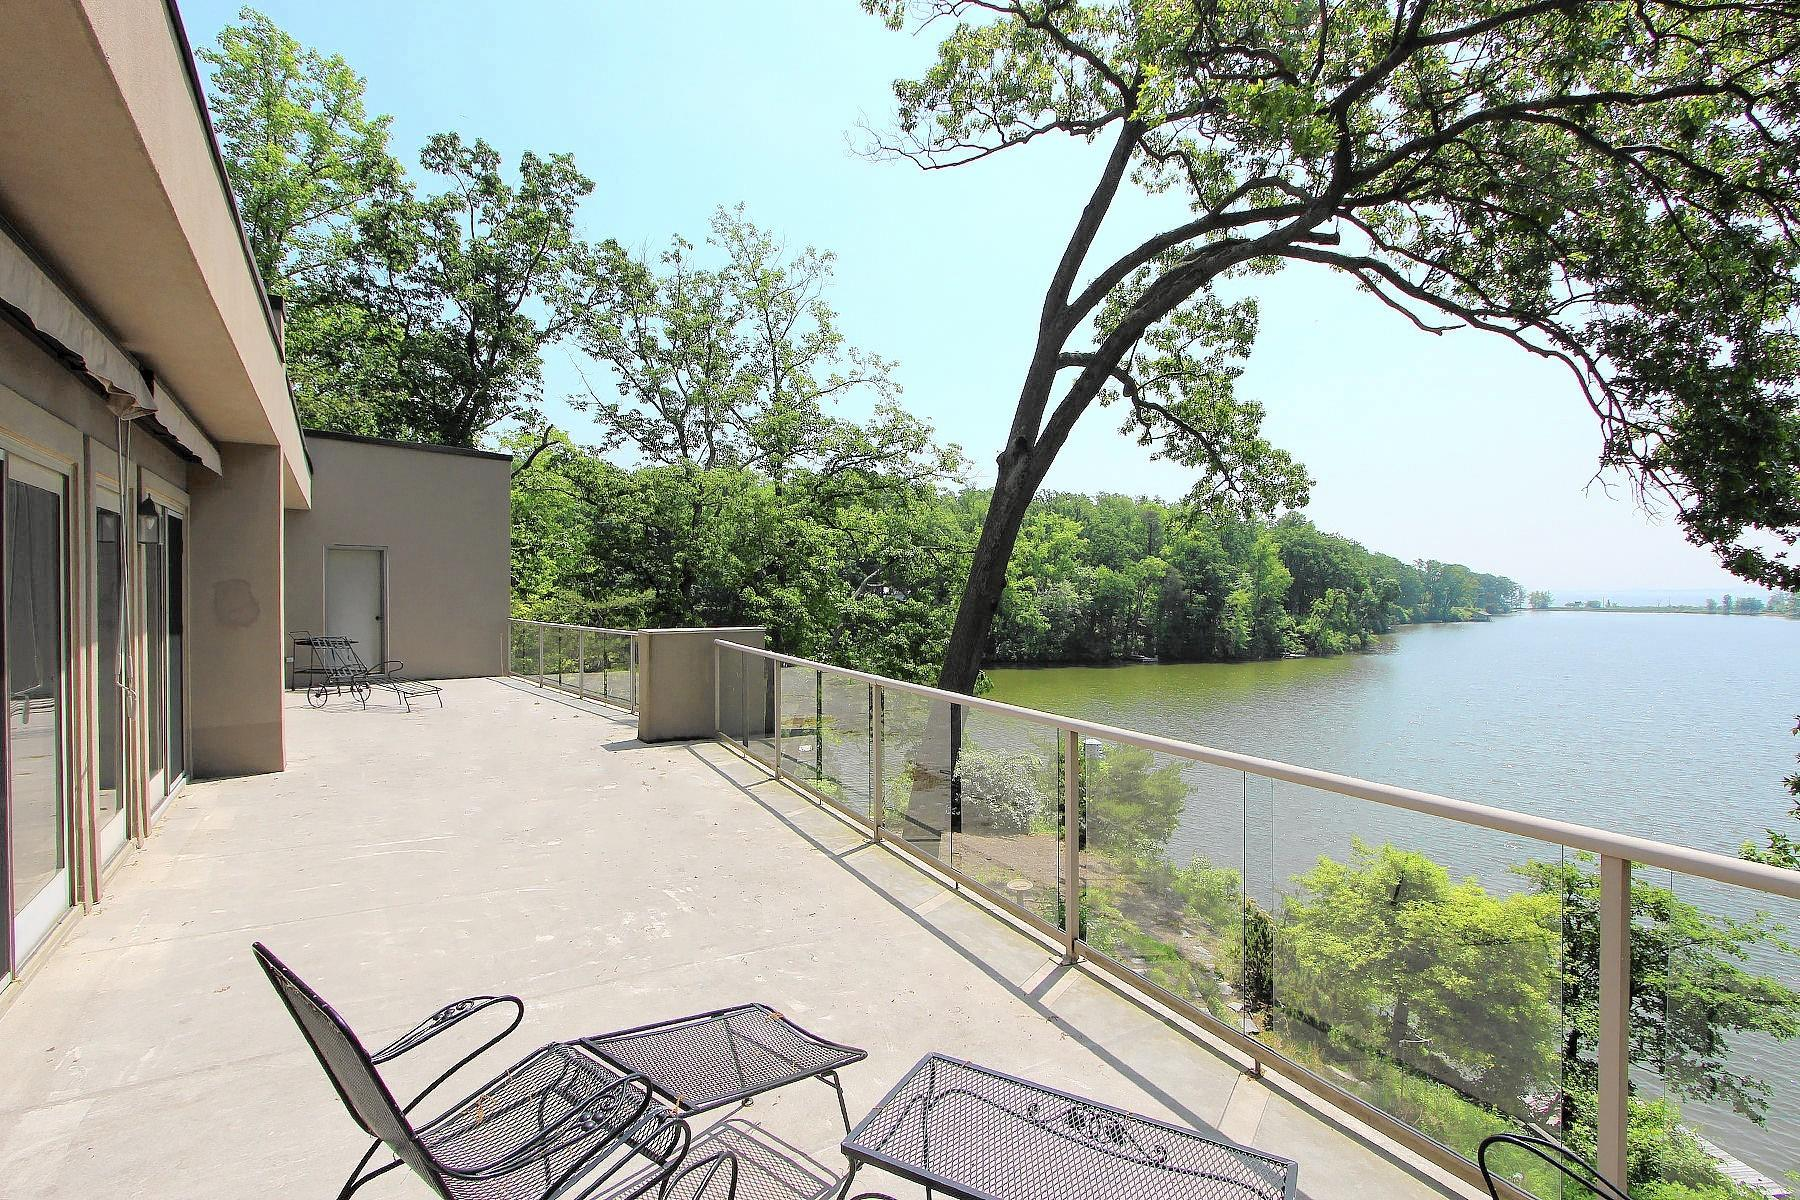 Watch osprey and blue heron from your private perch at 1621 St. Giles Road.